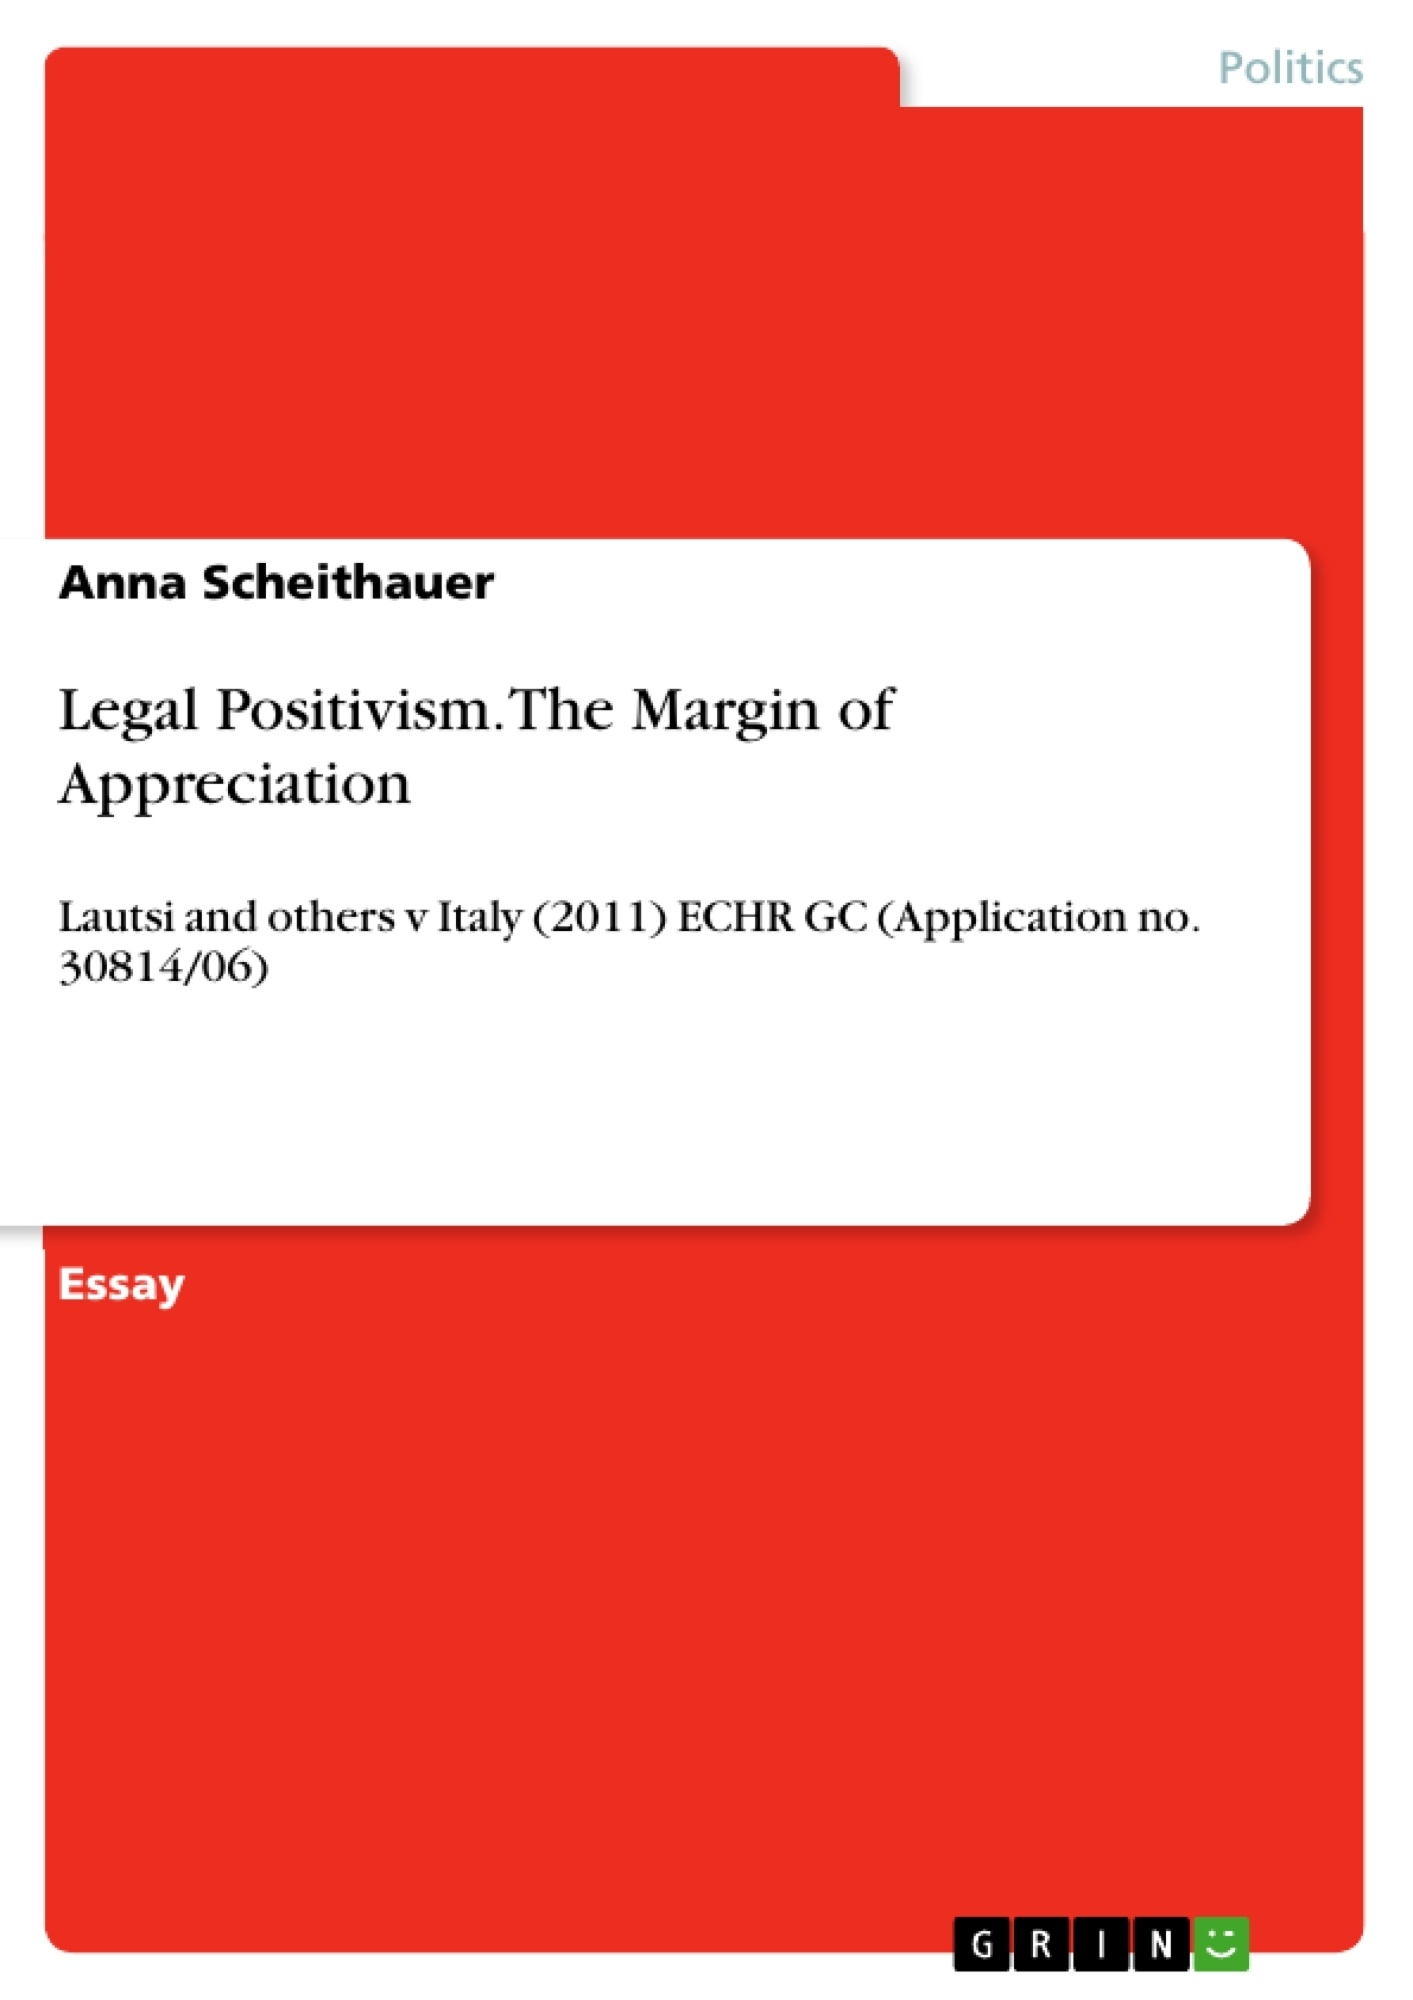 Title: Legal Positivism. The Margin of Appreciation